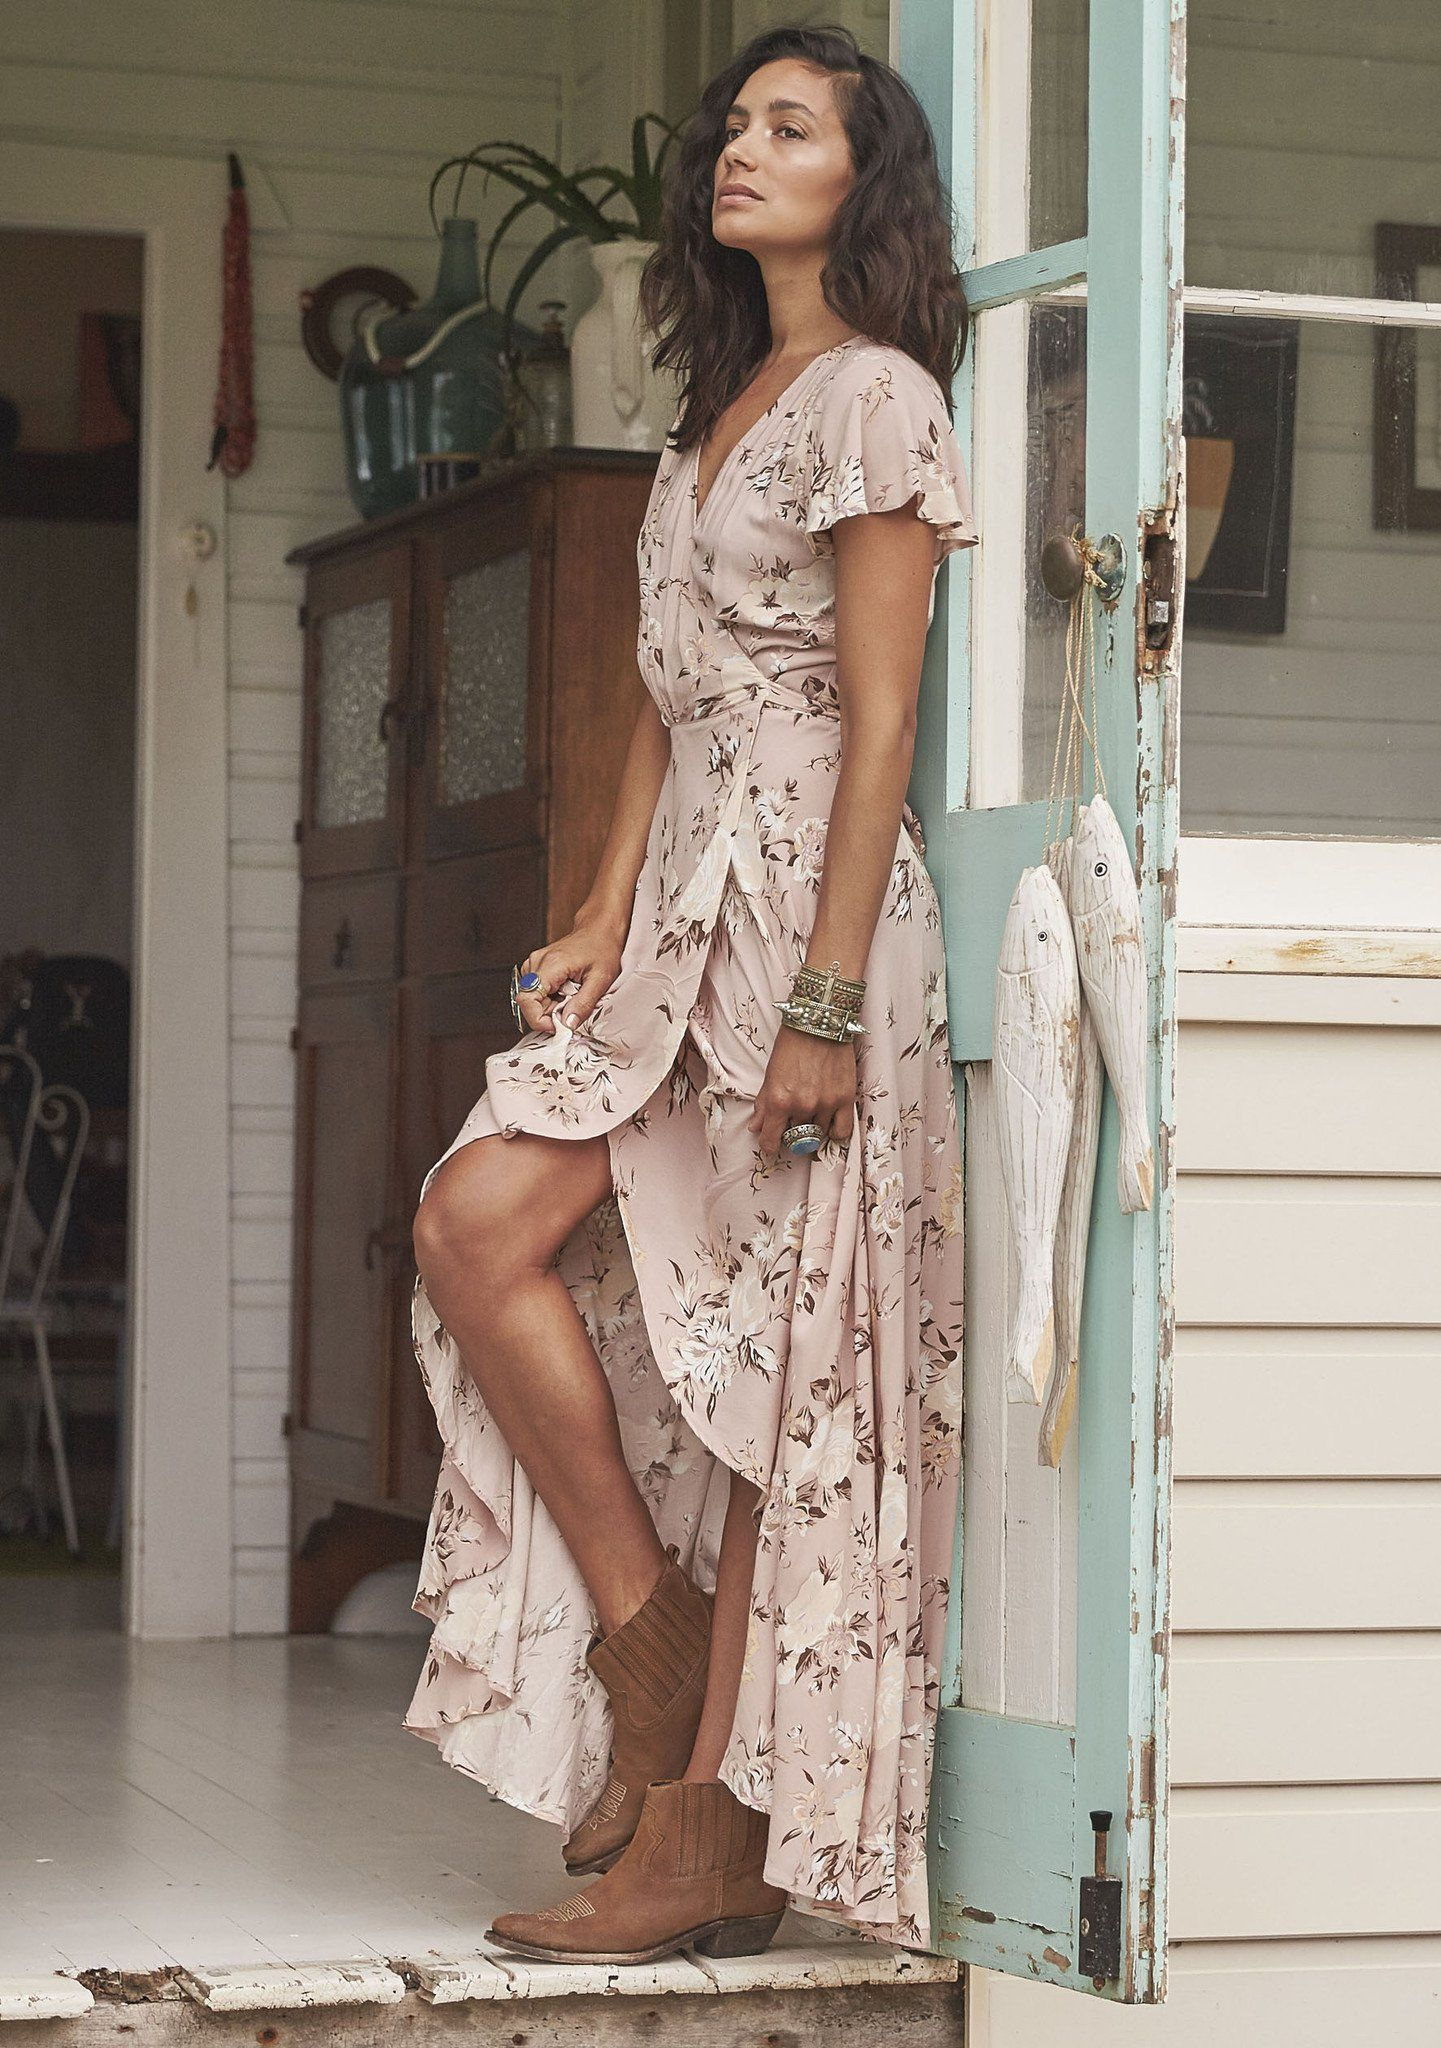 An Ode To Summer Days This Gorgeous Wrap Maxi Dress Has Short Light Frilled Sleeves And An Extra Special Gat Vintage Maxi Dress Boho Dress Vintage Dresses [ 2048 x 1441 Pixel ]